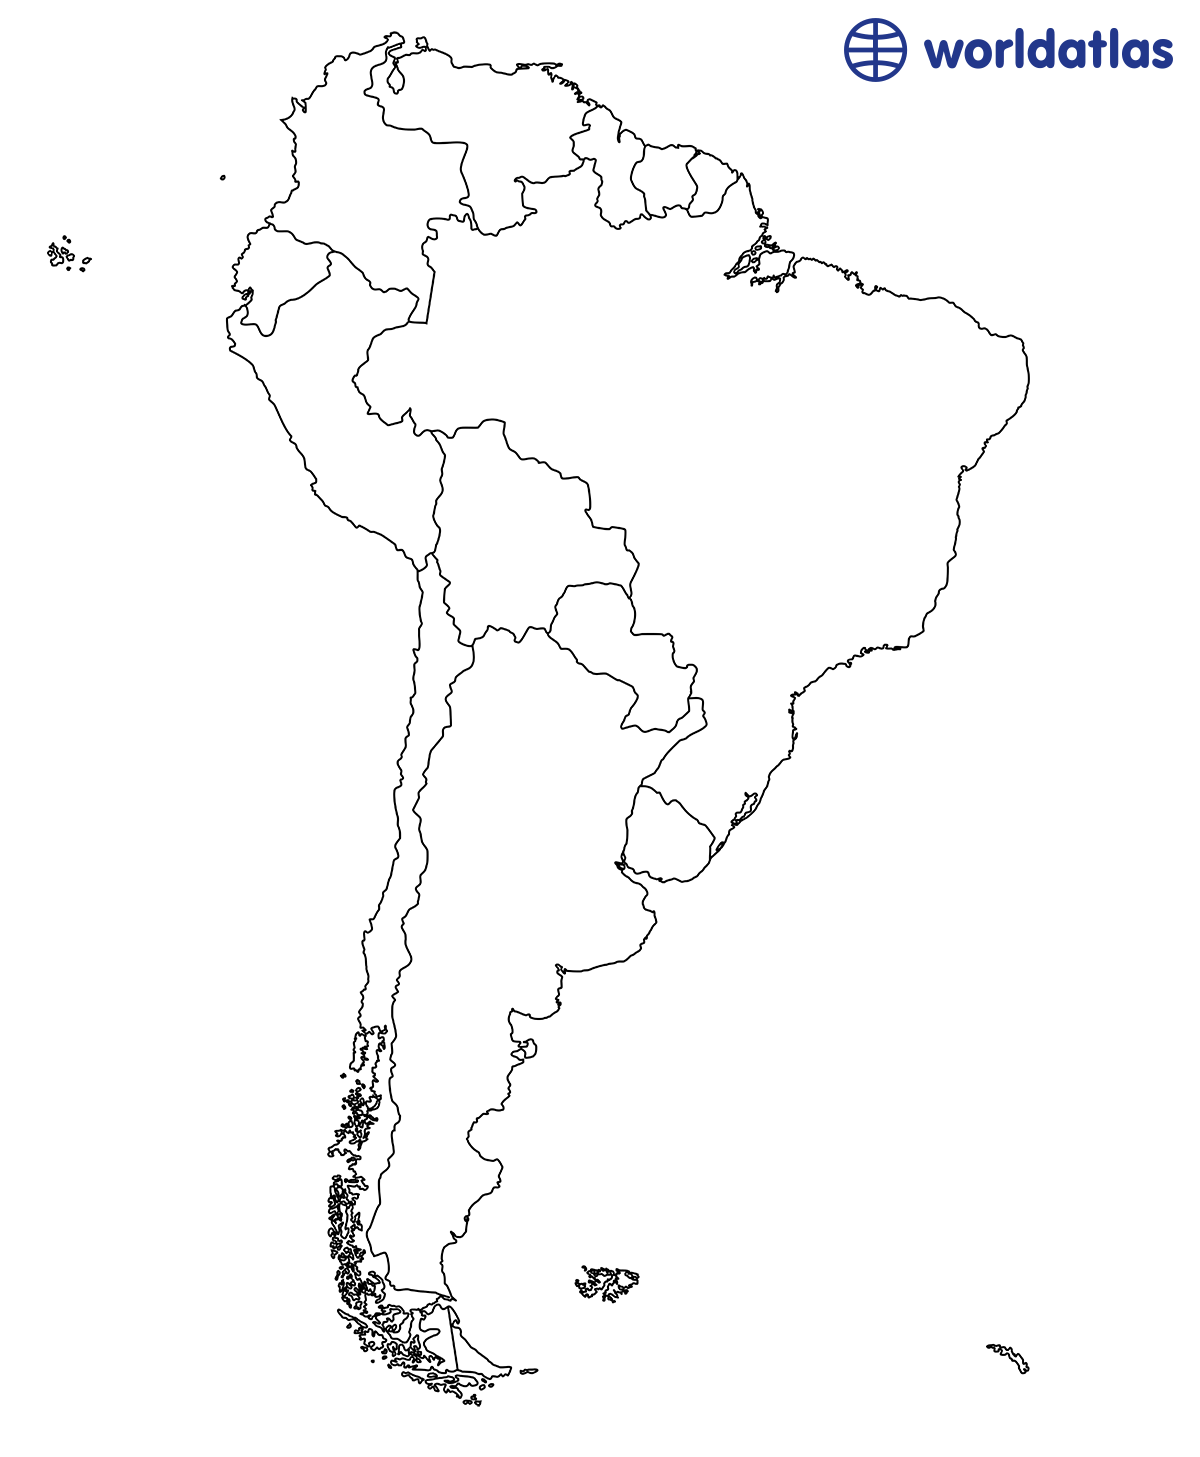 Sly Printable Maps Of South America